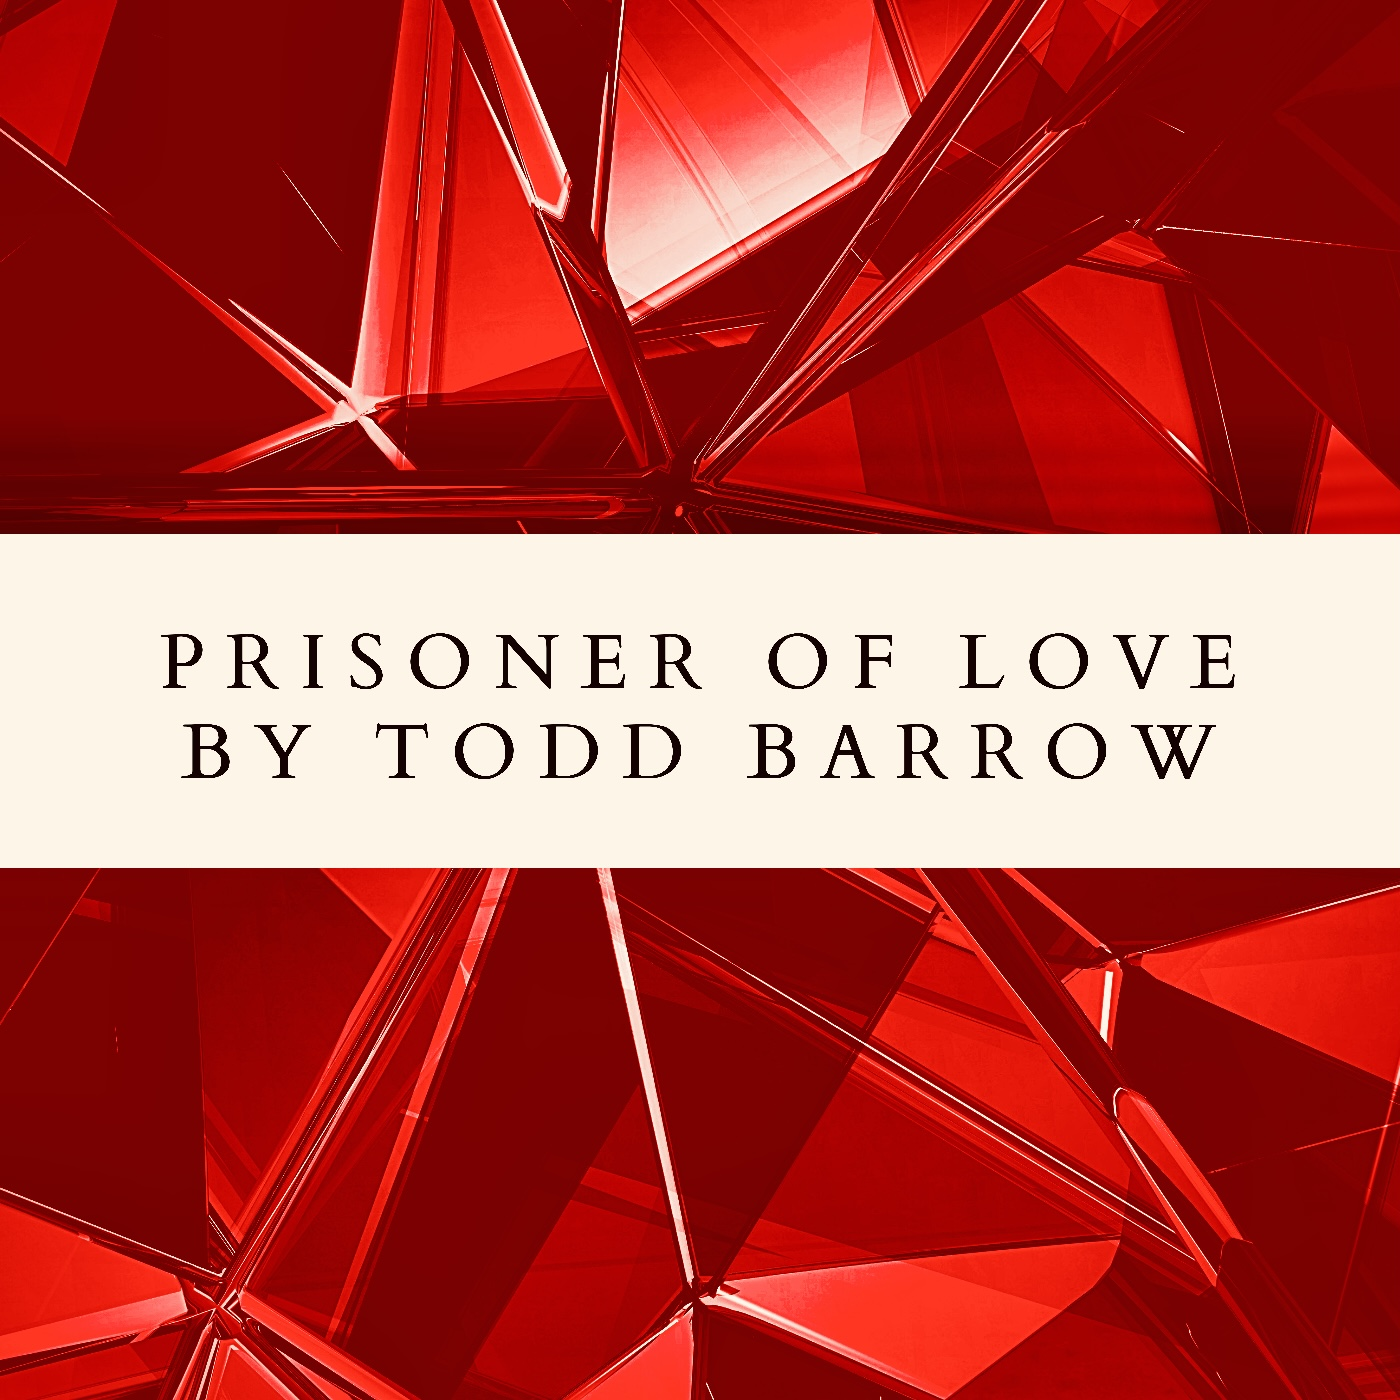 Prisoner of Love by Todd Barrow / Tender Moments & Raw Emotion